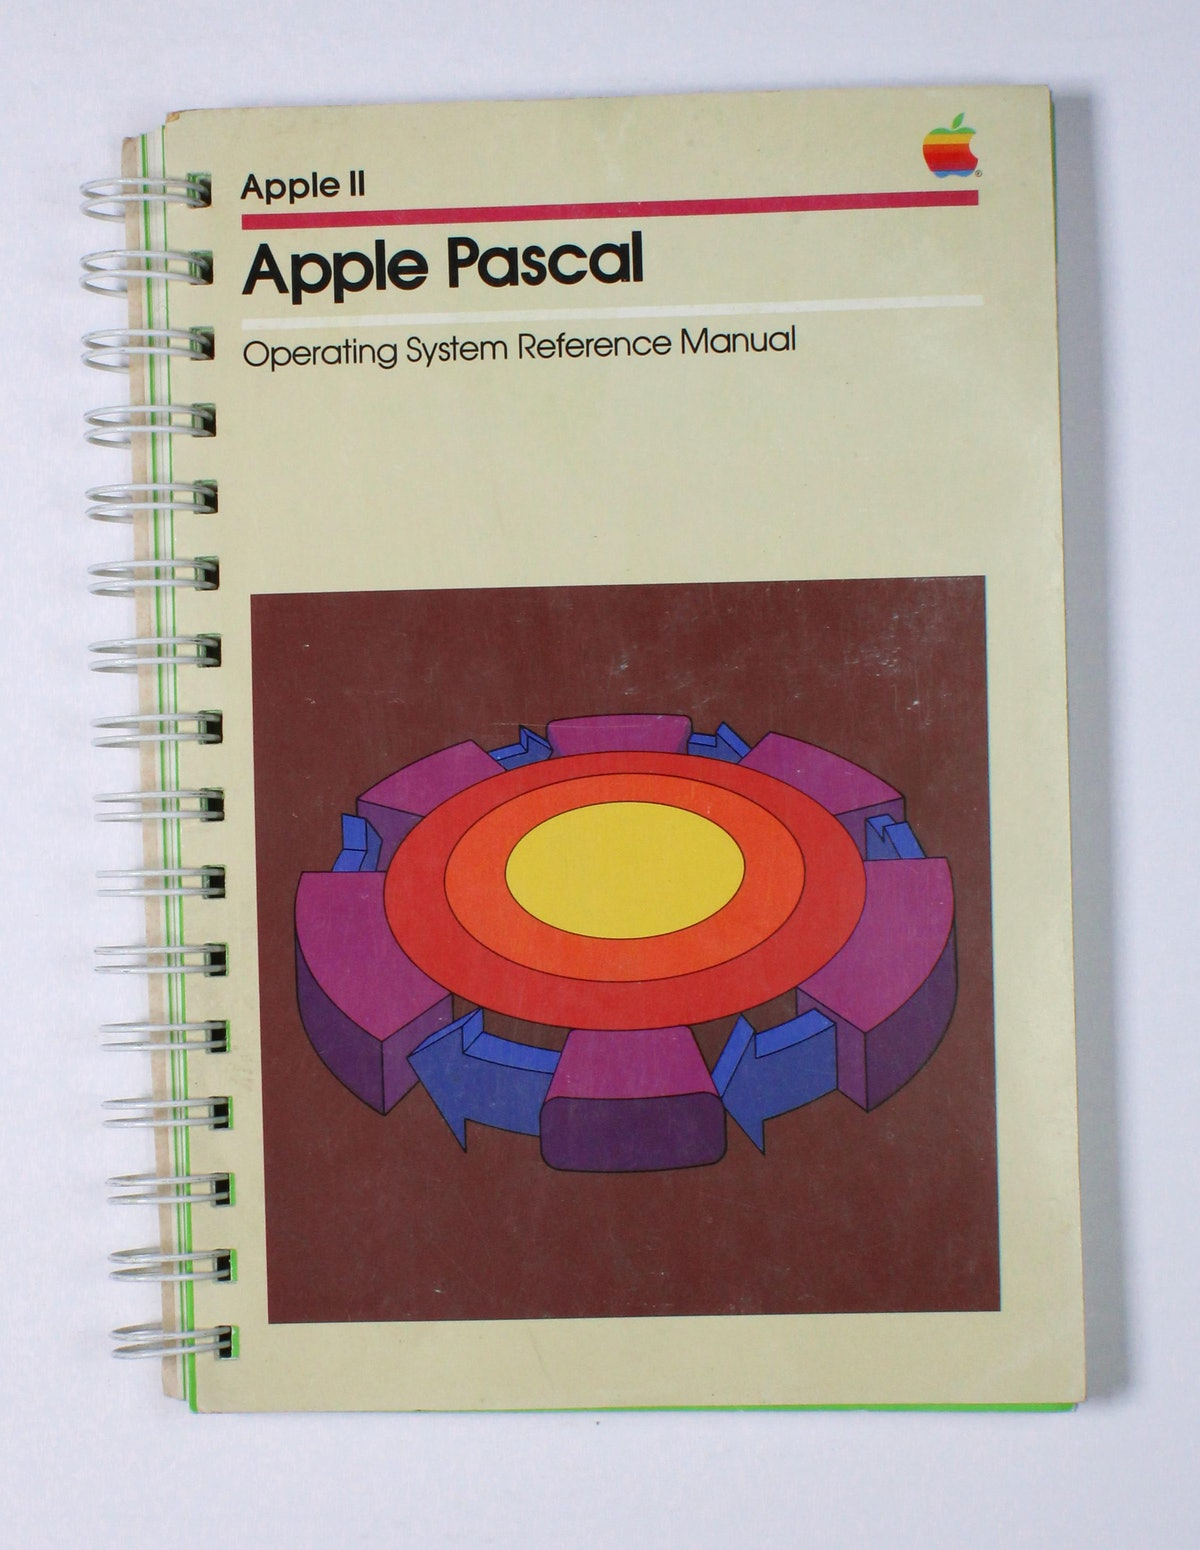 Apple Pascal Operating System Reference Manual for Apple II